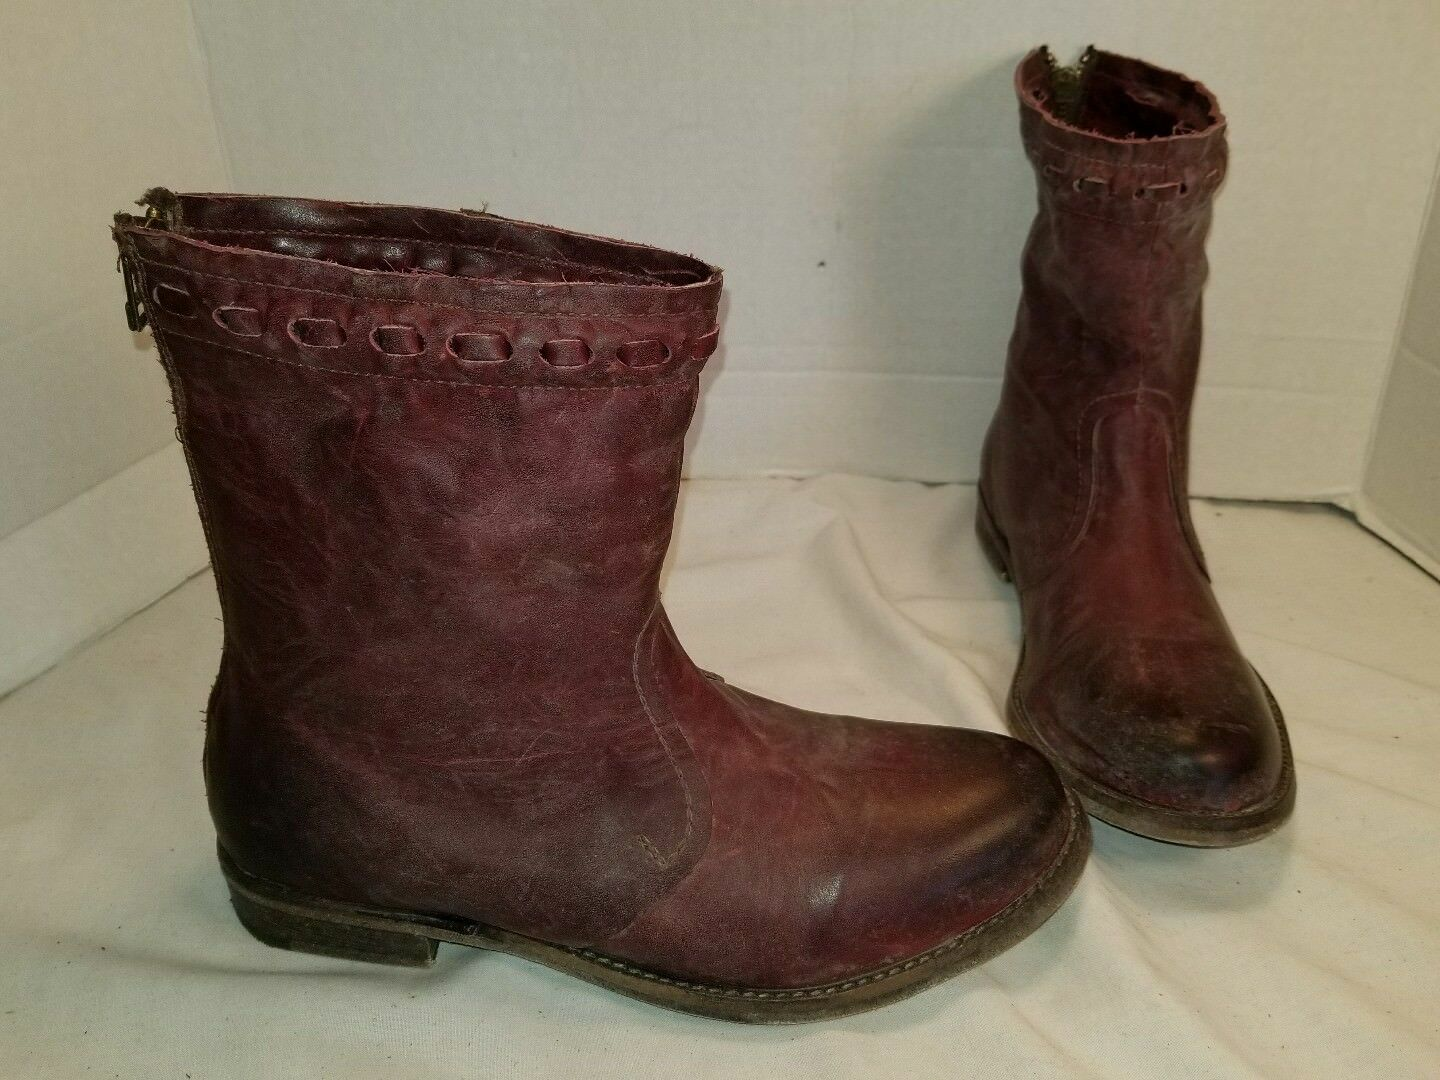 NEW FREE PEOPLE FARYLROBIN SPRING VALLEY OXBLOOD LEATHER ANKLE BOOTS US 7